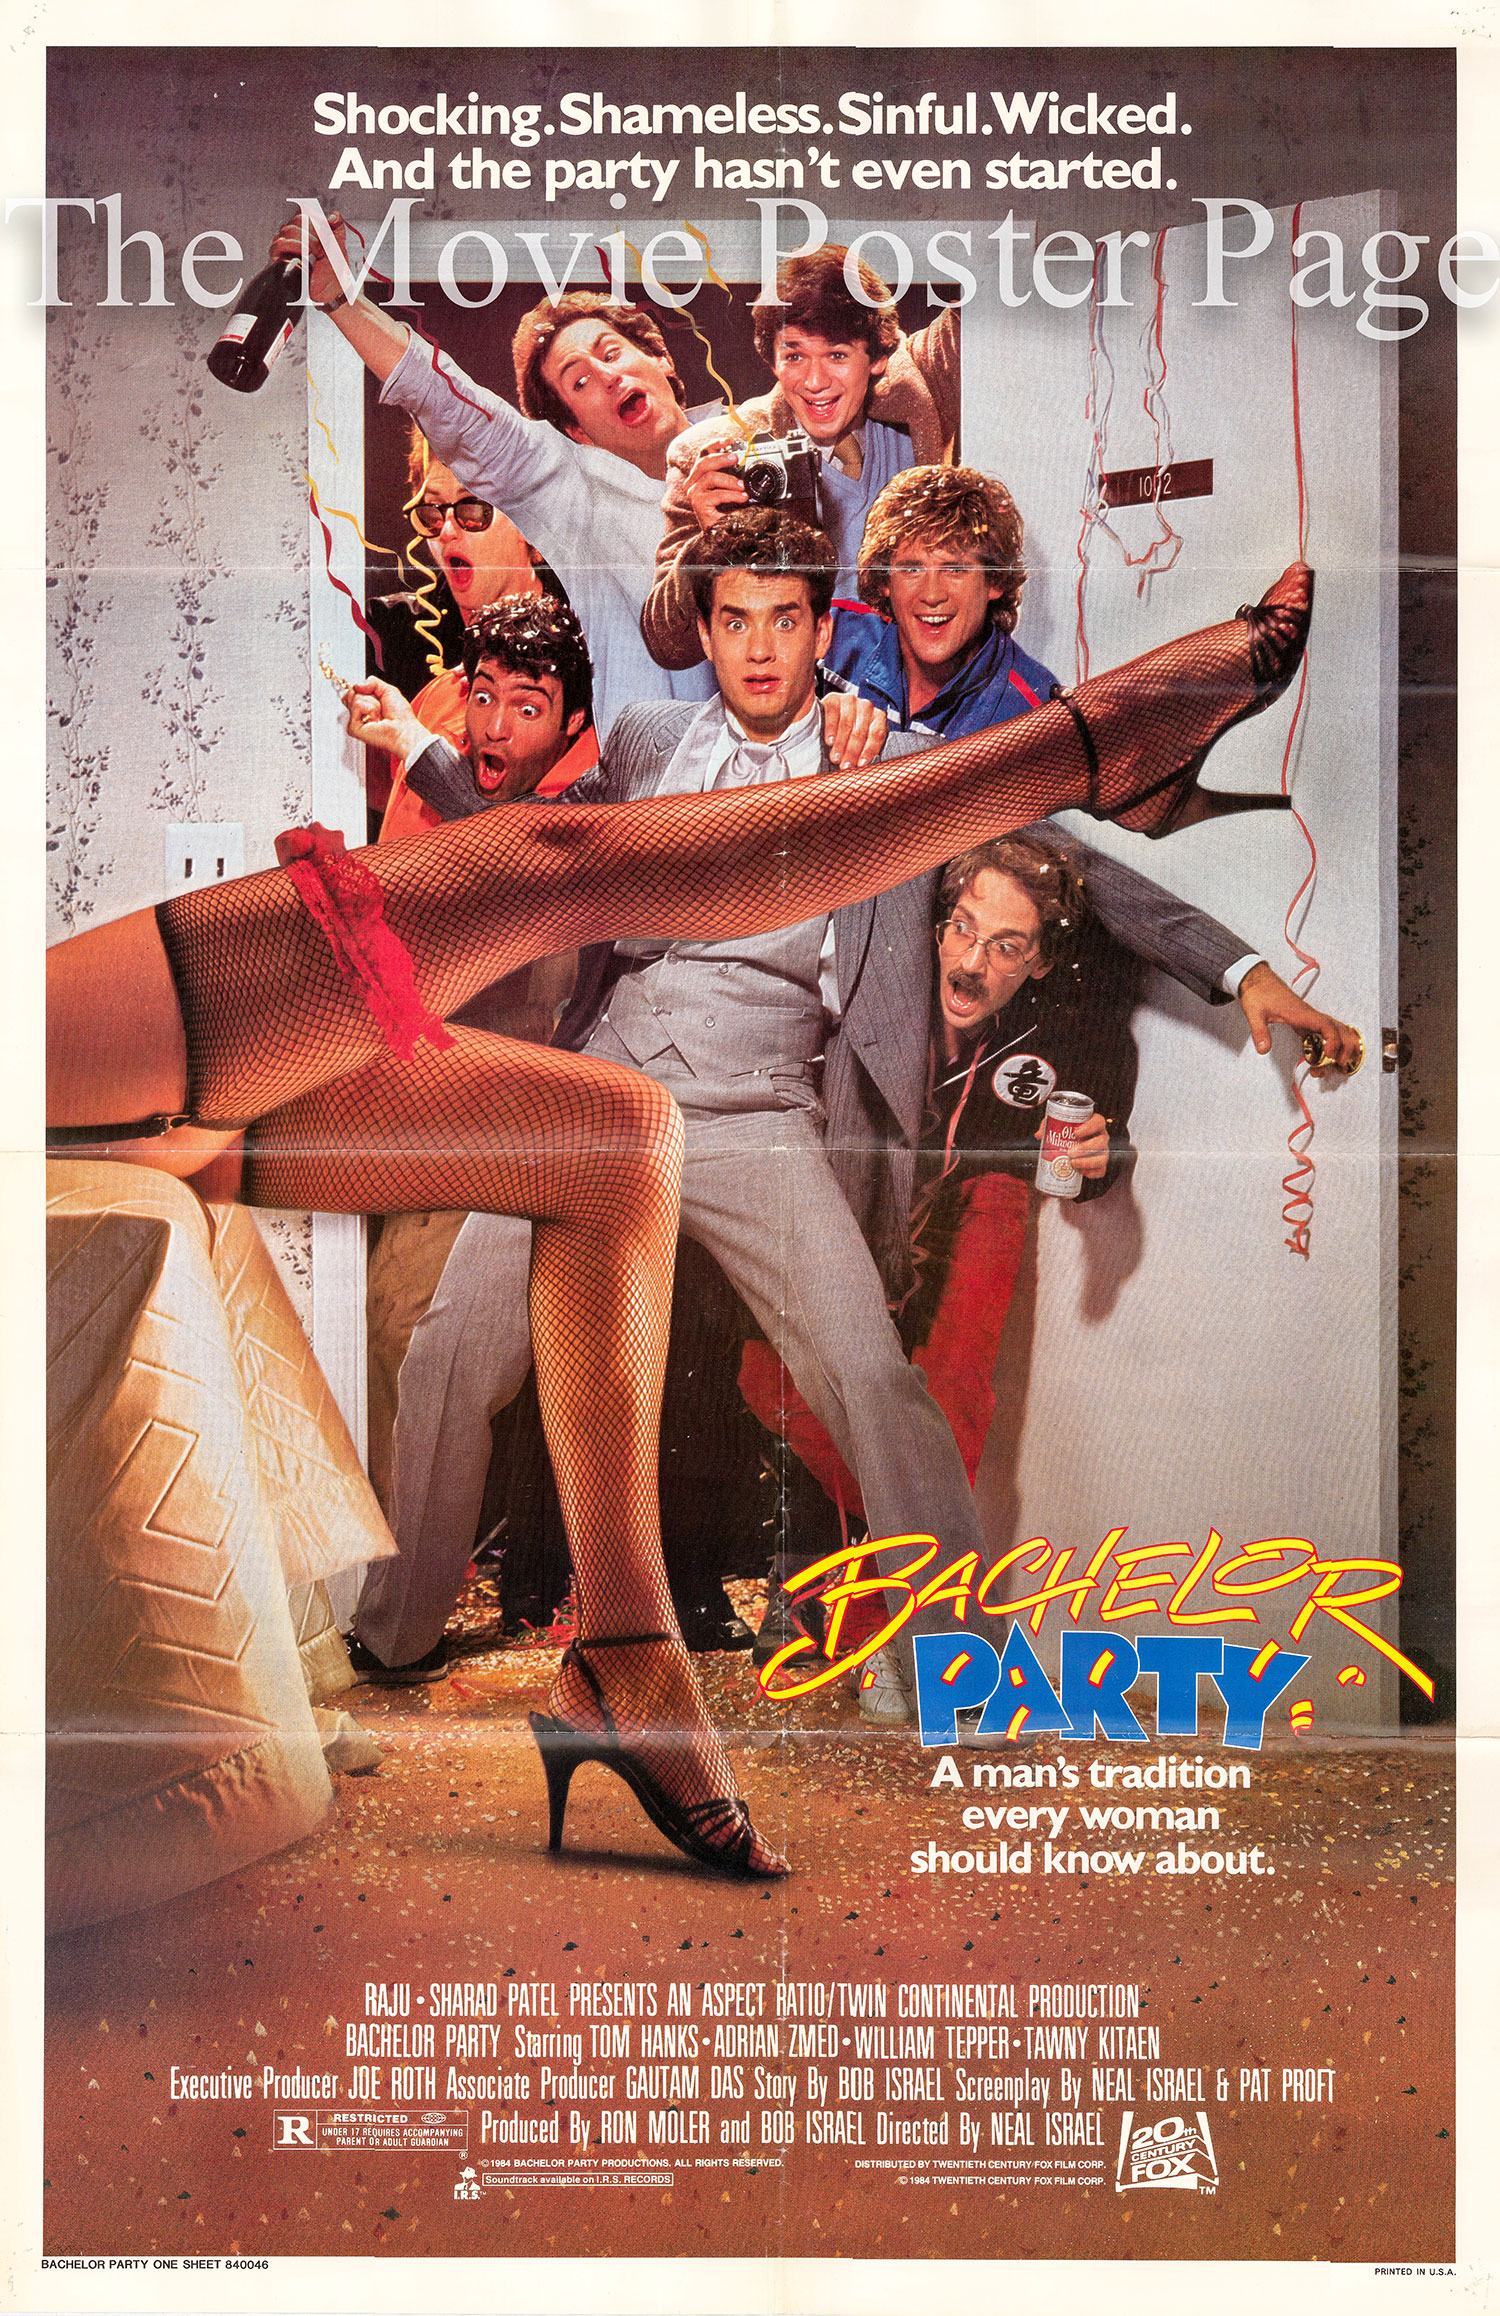 Pictured is a US one-sheet poster for the 1984 Neal Israel film Bachelor Party starring Tom Hanks.